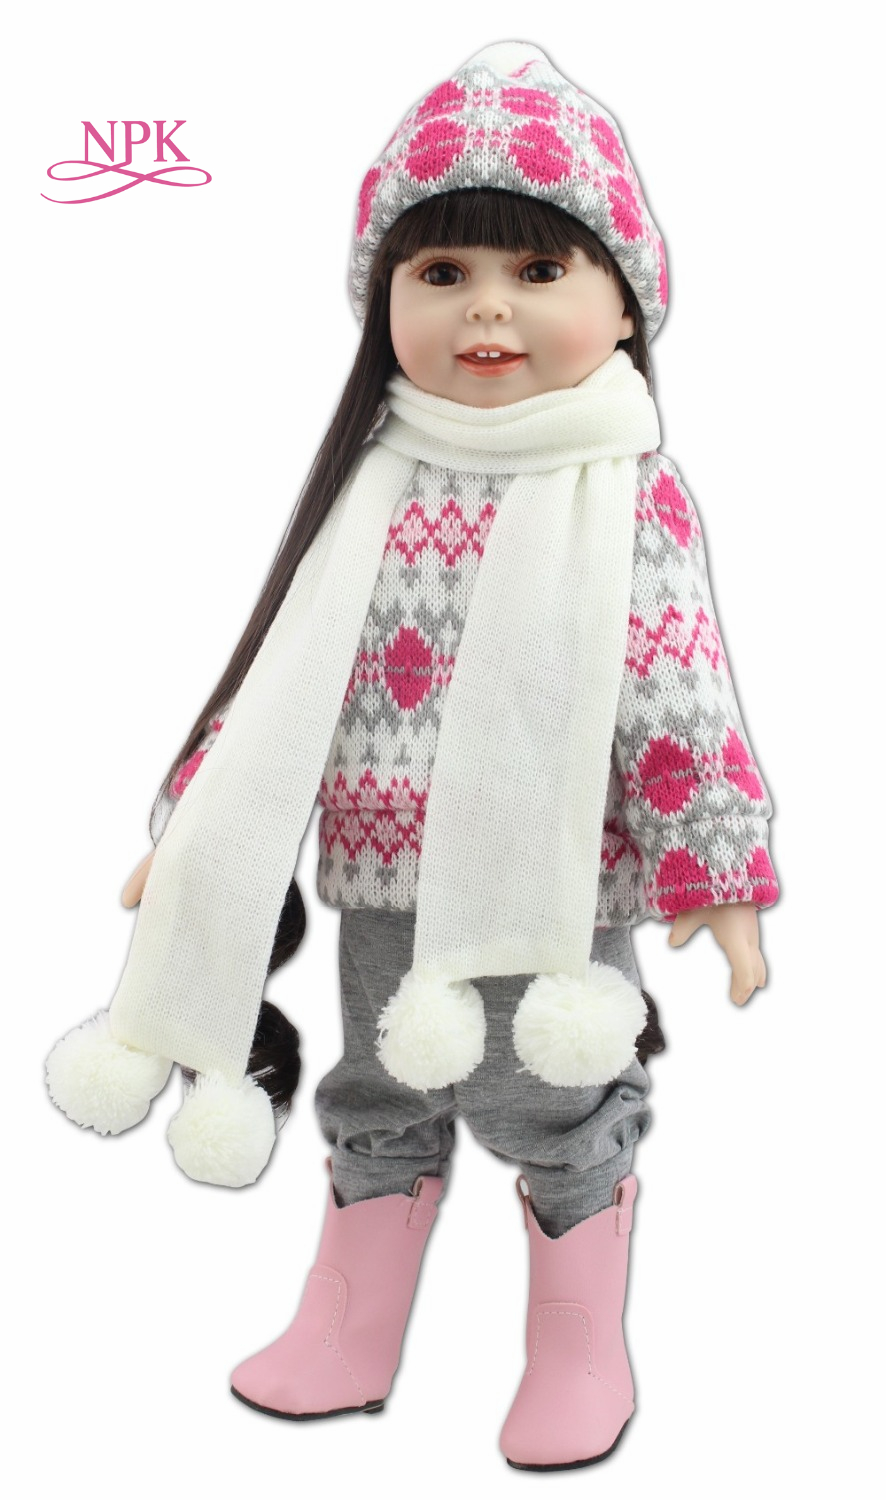 NPK 18inches fashion popular American girl doll winter suit fashion play doll education toy for kids'christmas gifts кукла fashion royalty crazy girl misaki nippon fashion doll 2008